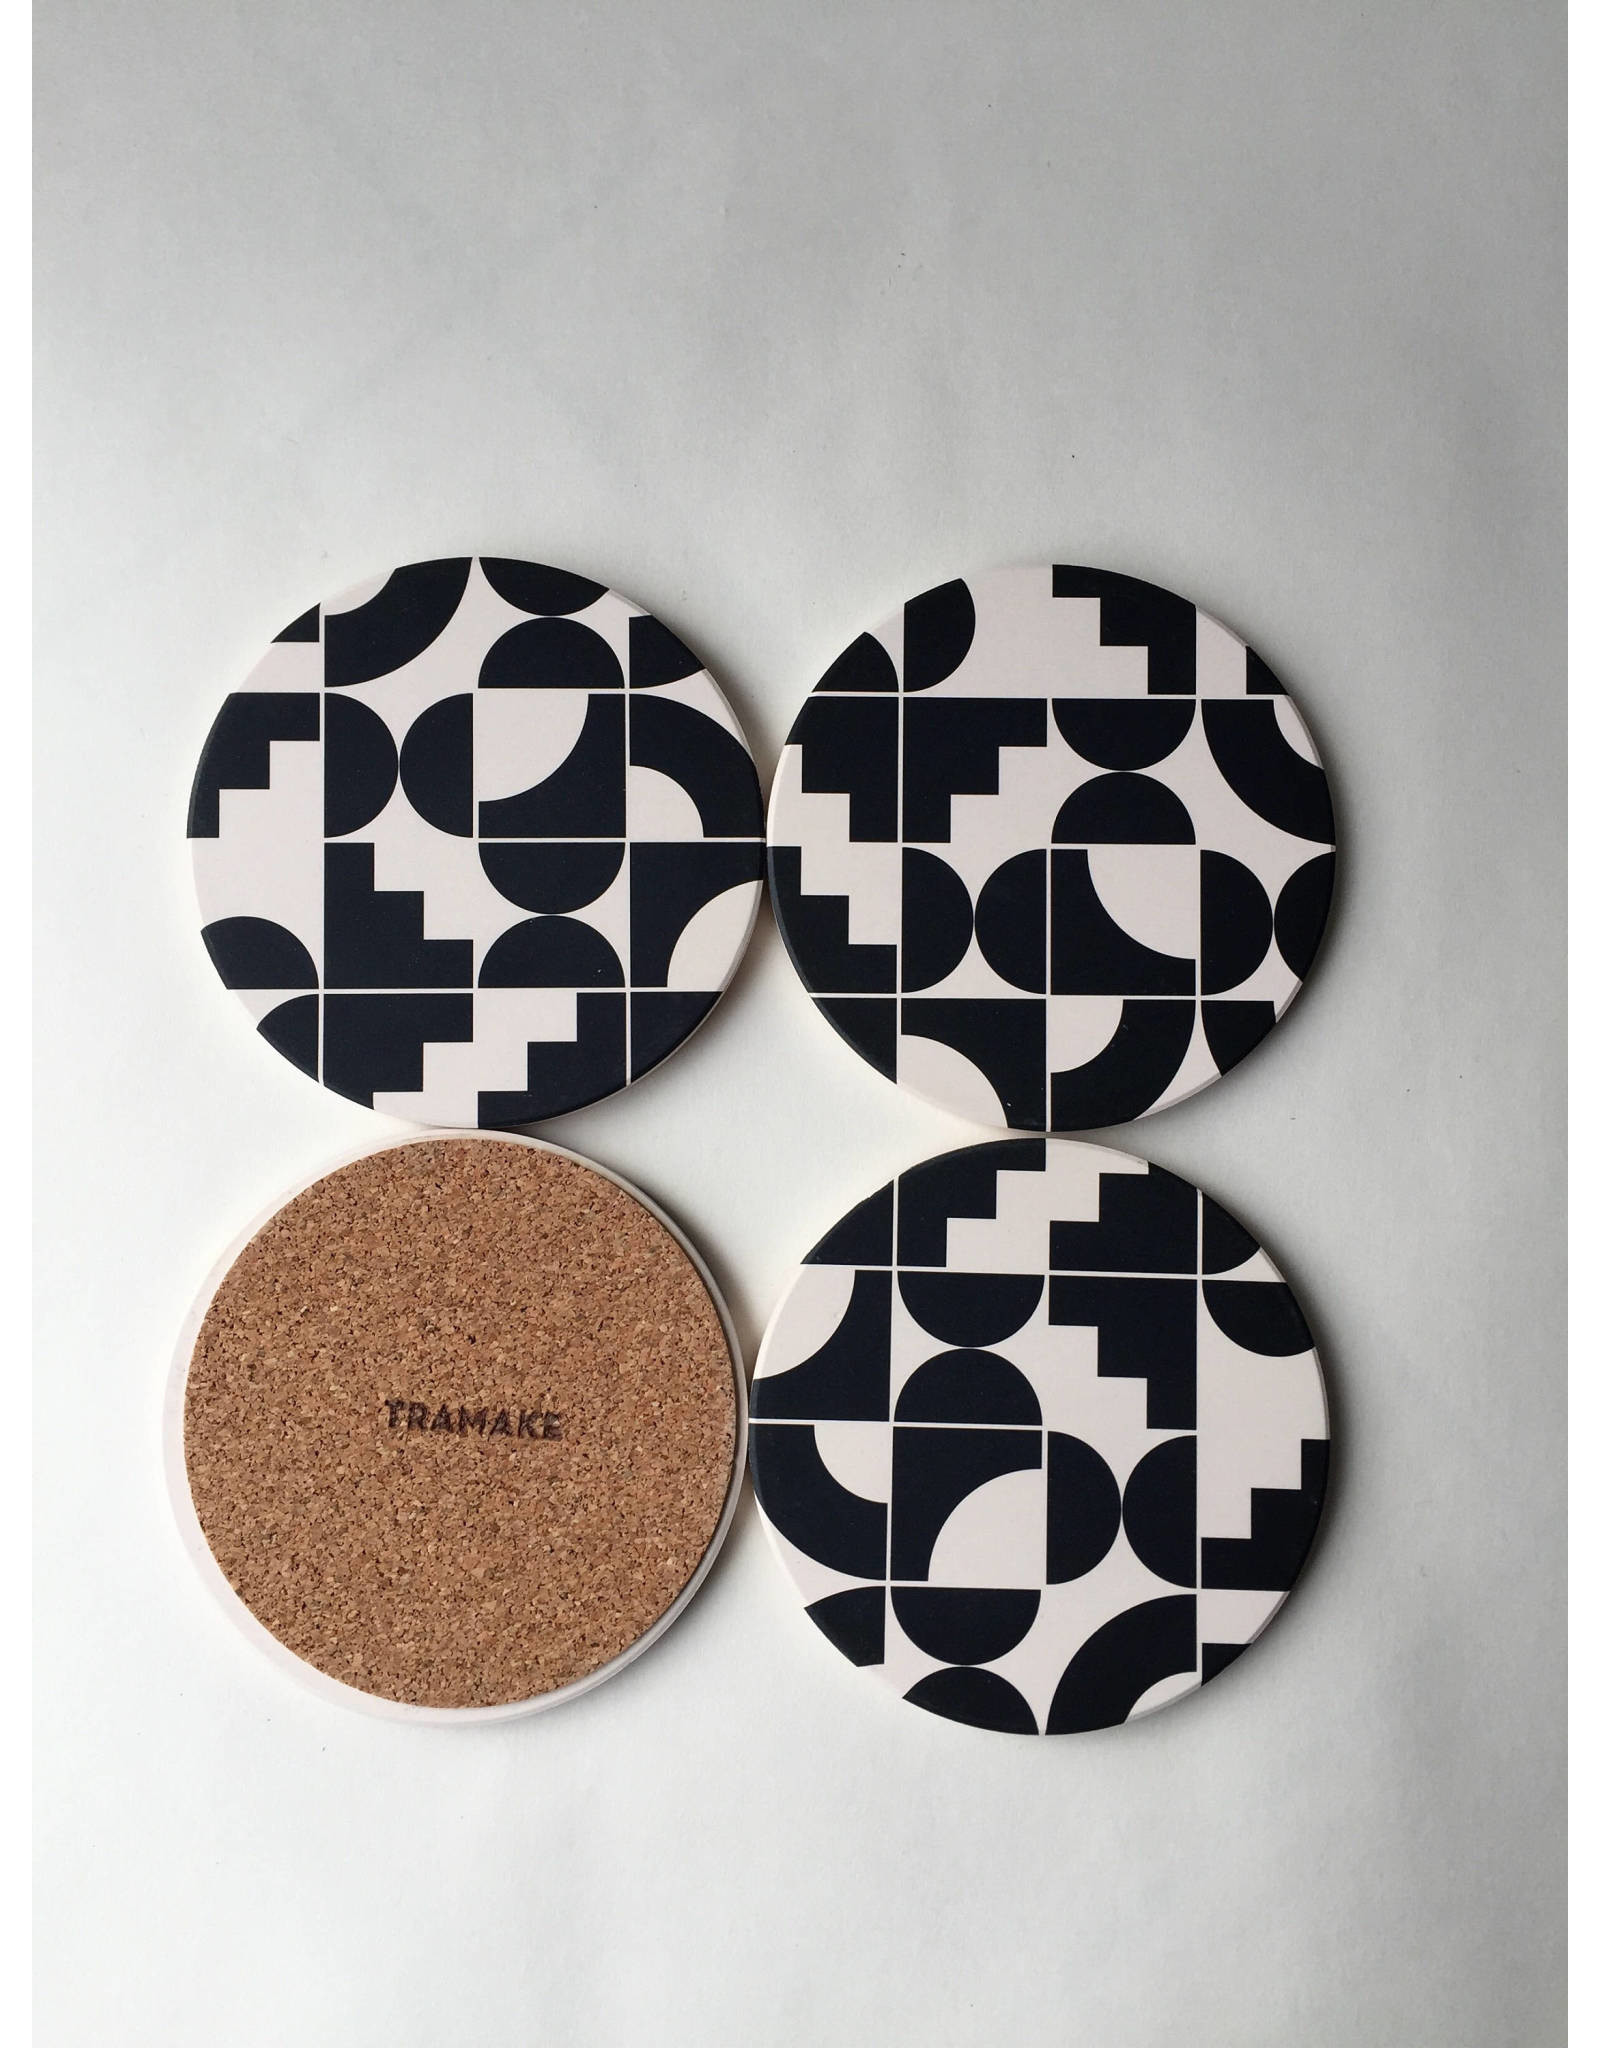 Tramake SHAPES Ceramic Coasters set of 4